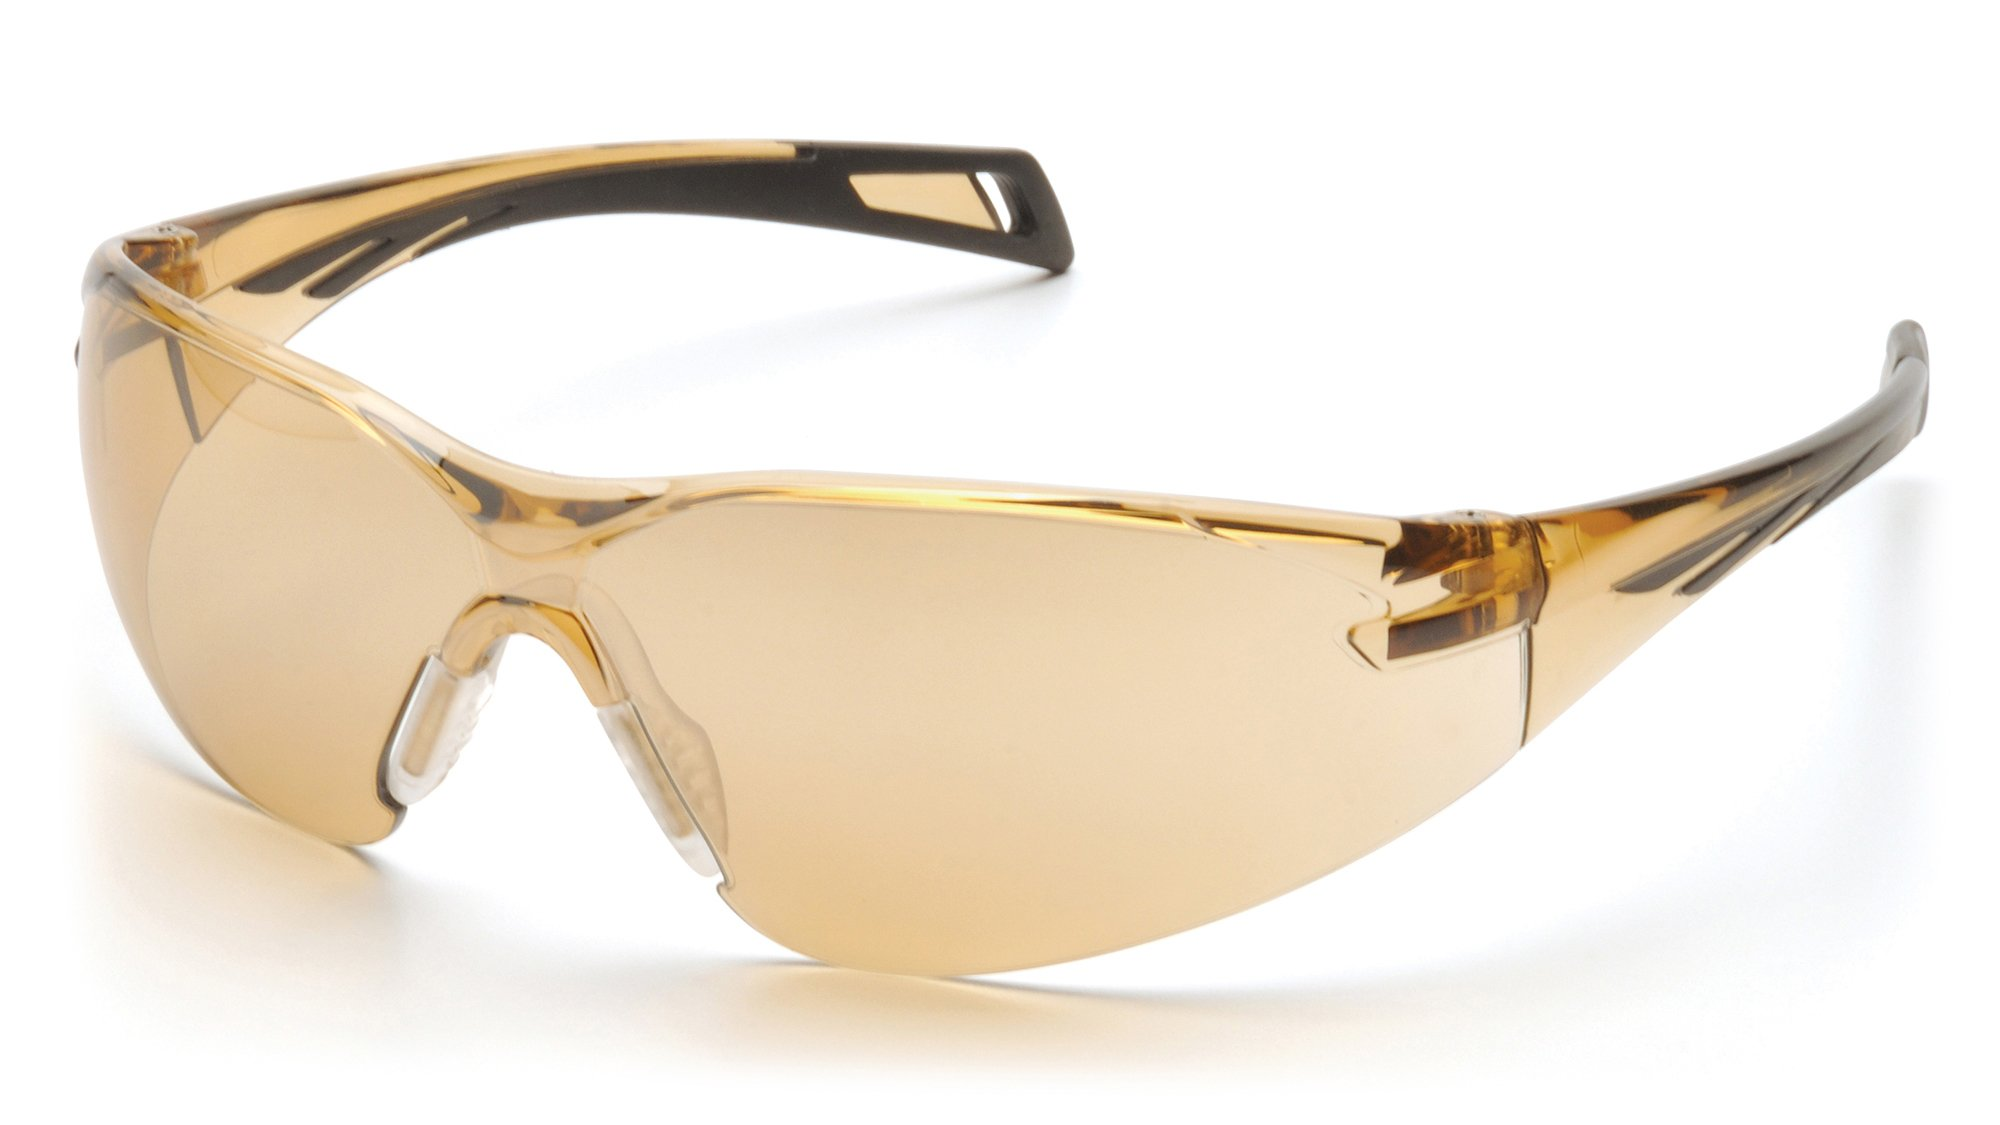 Pyramex Intruder Safety Eyewear Indoor//Outdoor Frame Indoor//Outdoor-Hardcoated Anti-Fog Lens